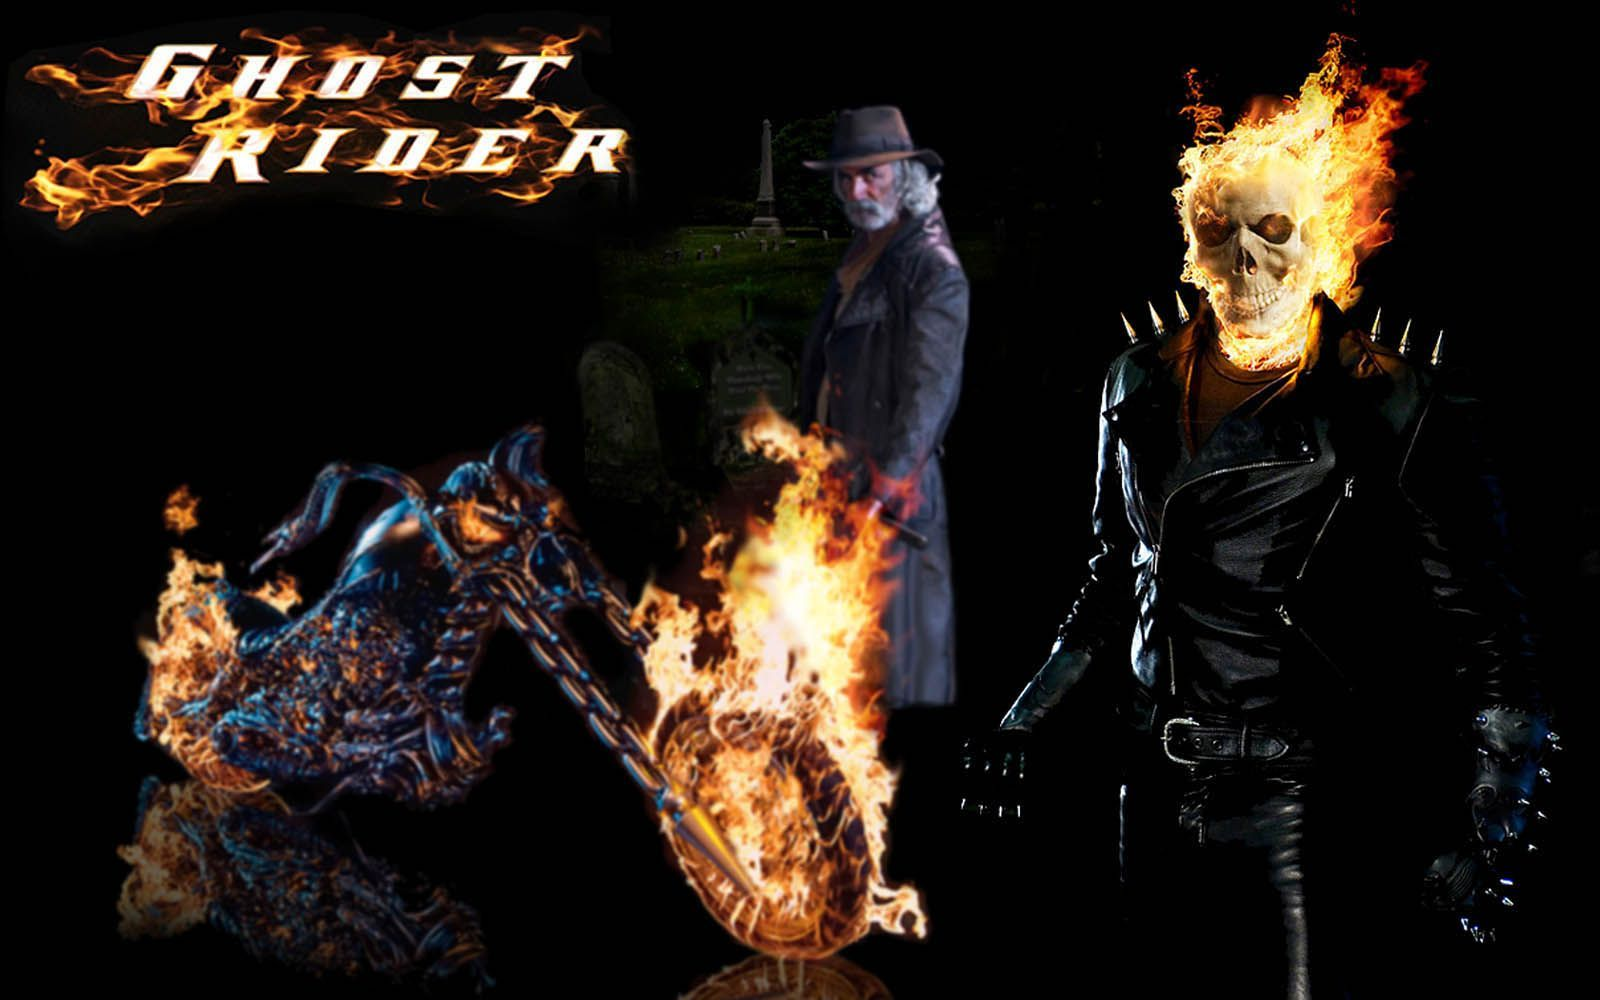 1600x1000 Blue Ghost Rider | Ghost Rider Wallpapers | ghost rider | Pinterest ...